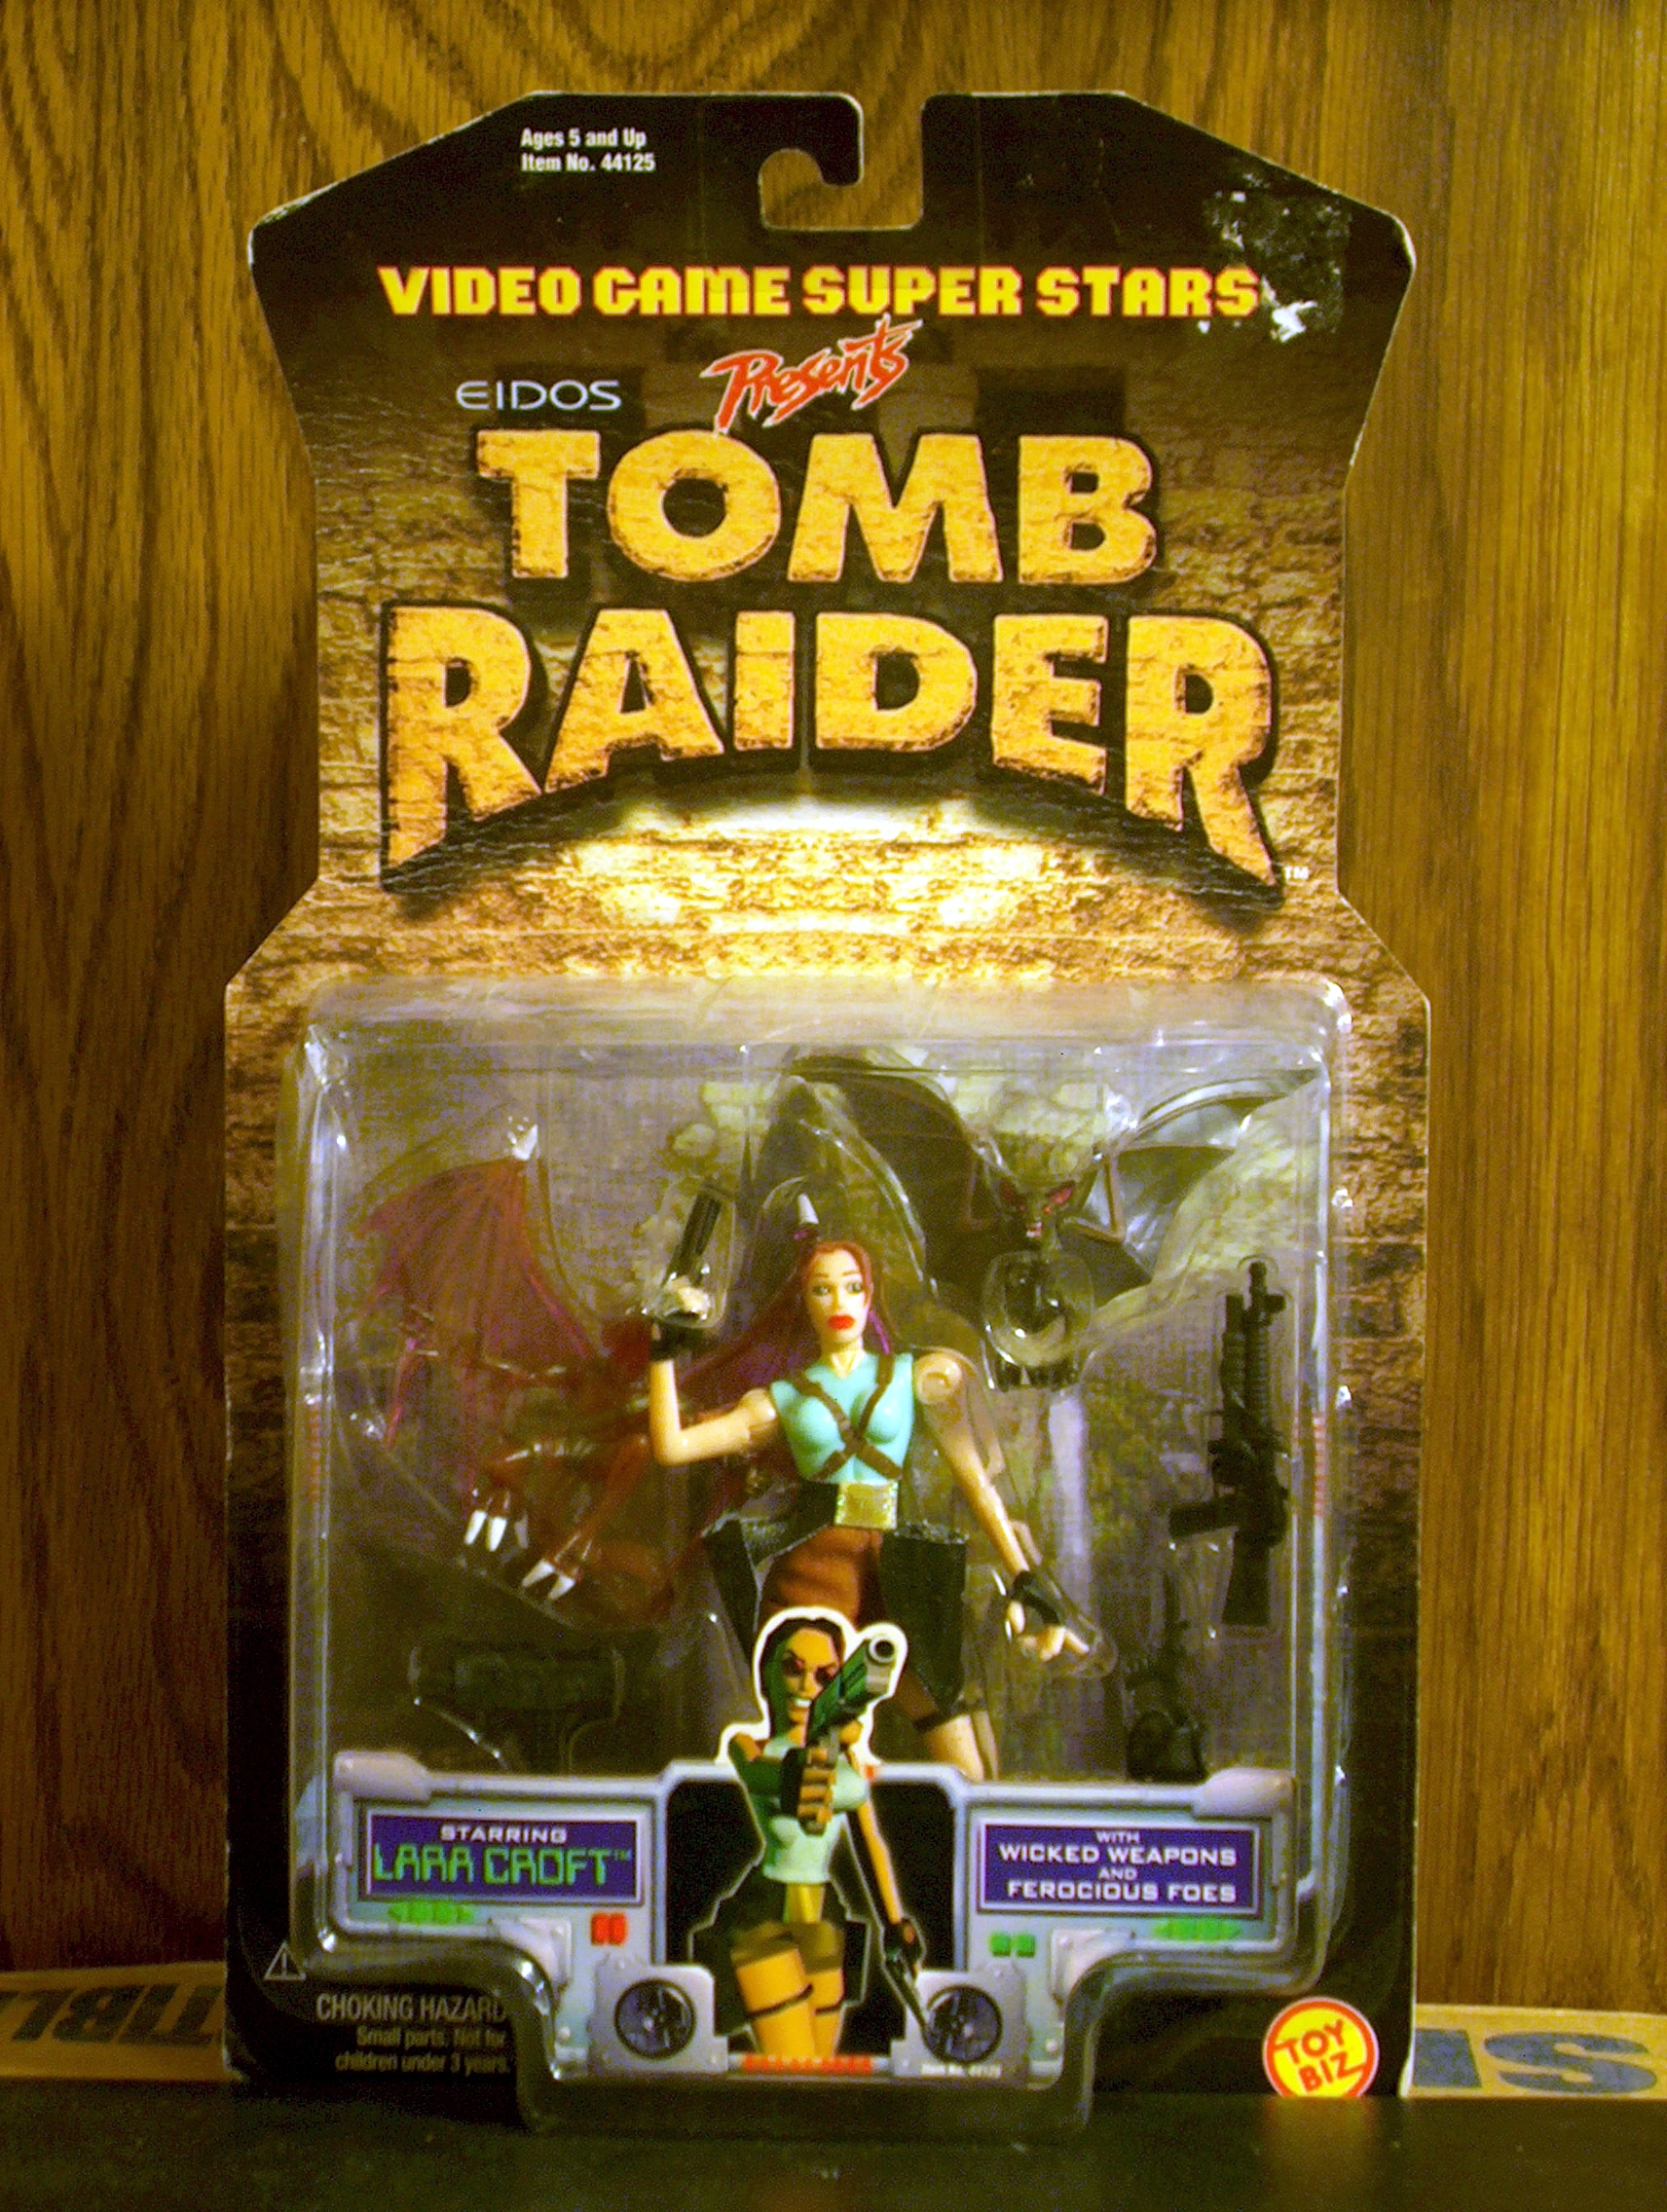 Lara Croft (with Wicked Weapons and Ferocious Foes)